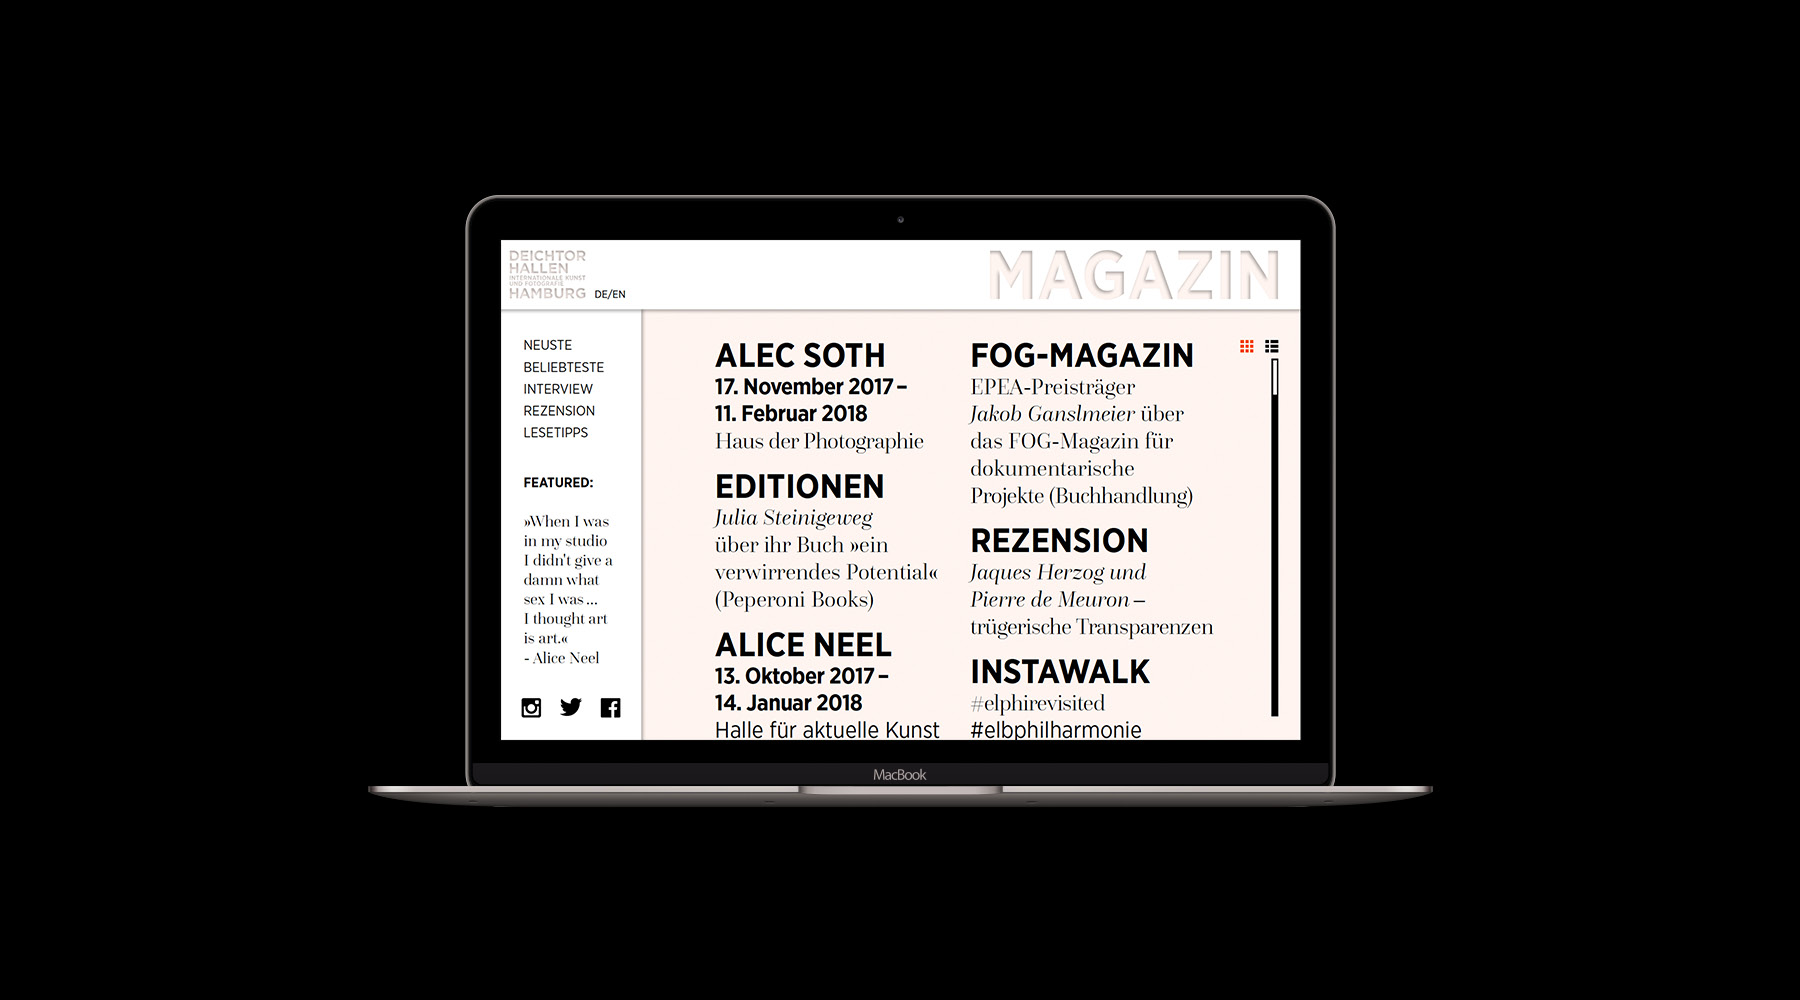 deichtorhallen_website_mockup_konter3